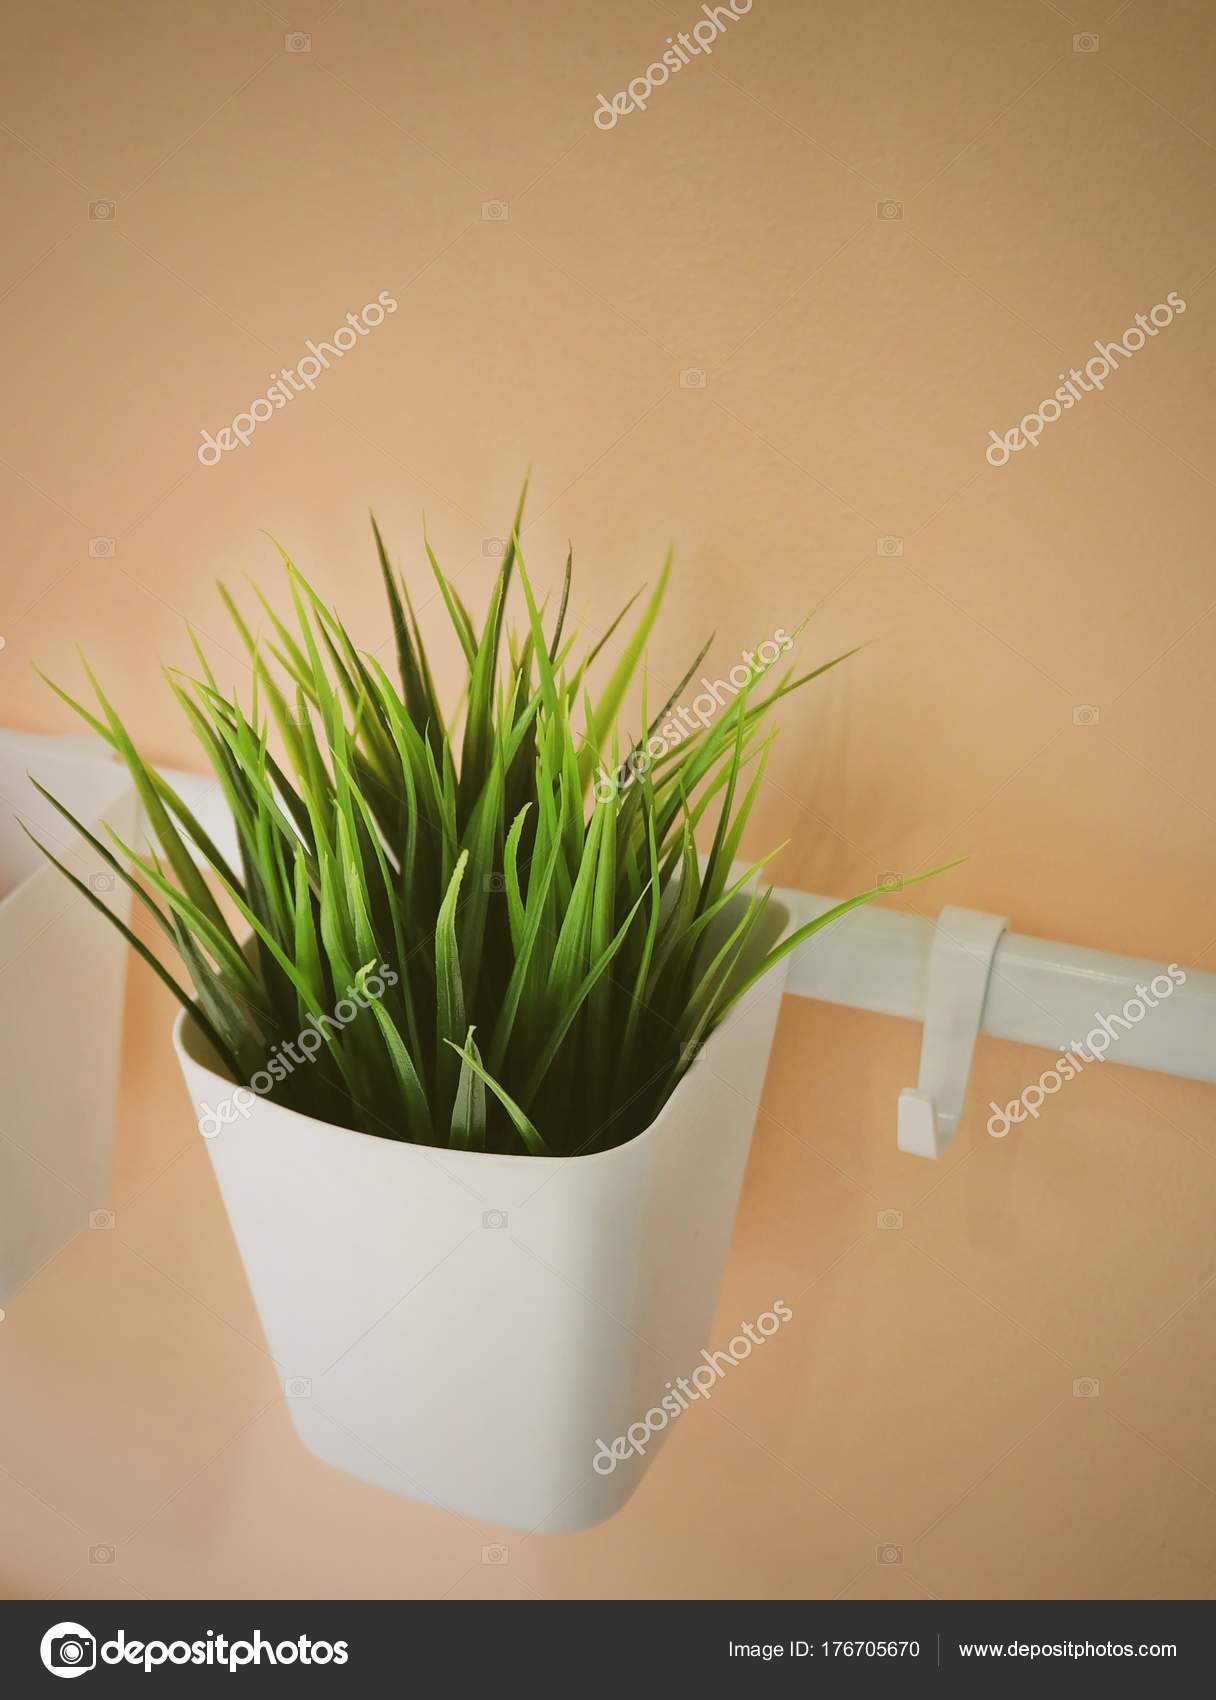 green artificial plant in a white pot — stock photo © arayabandit